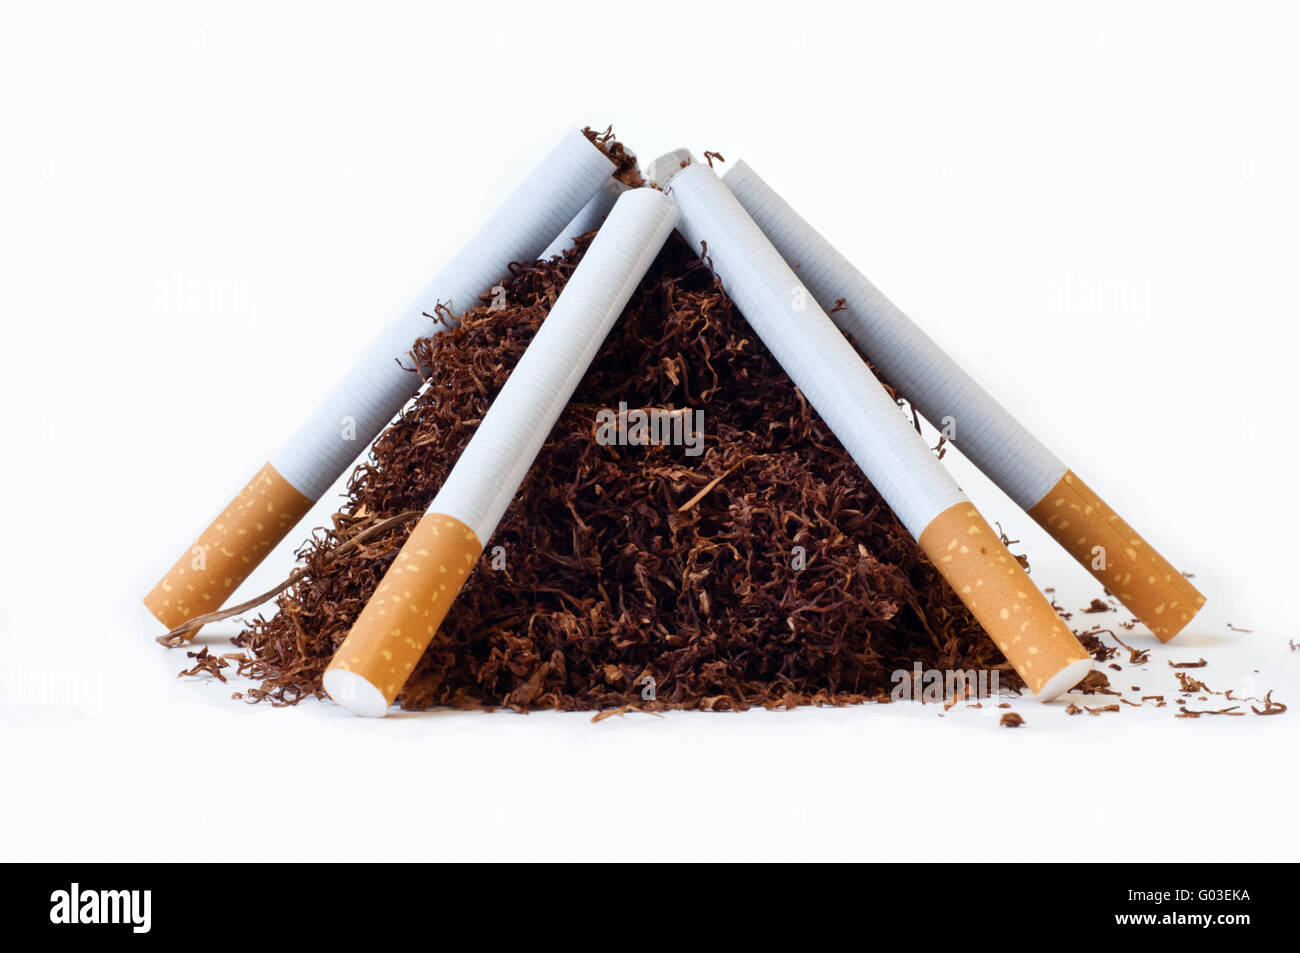 cigarettes funeral pyre - Stock Image